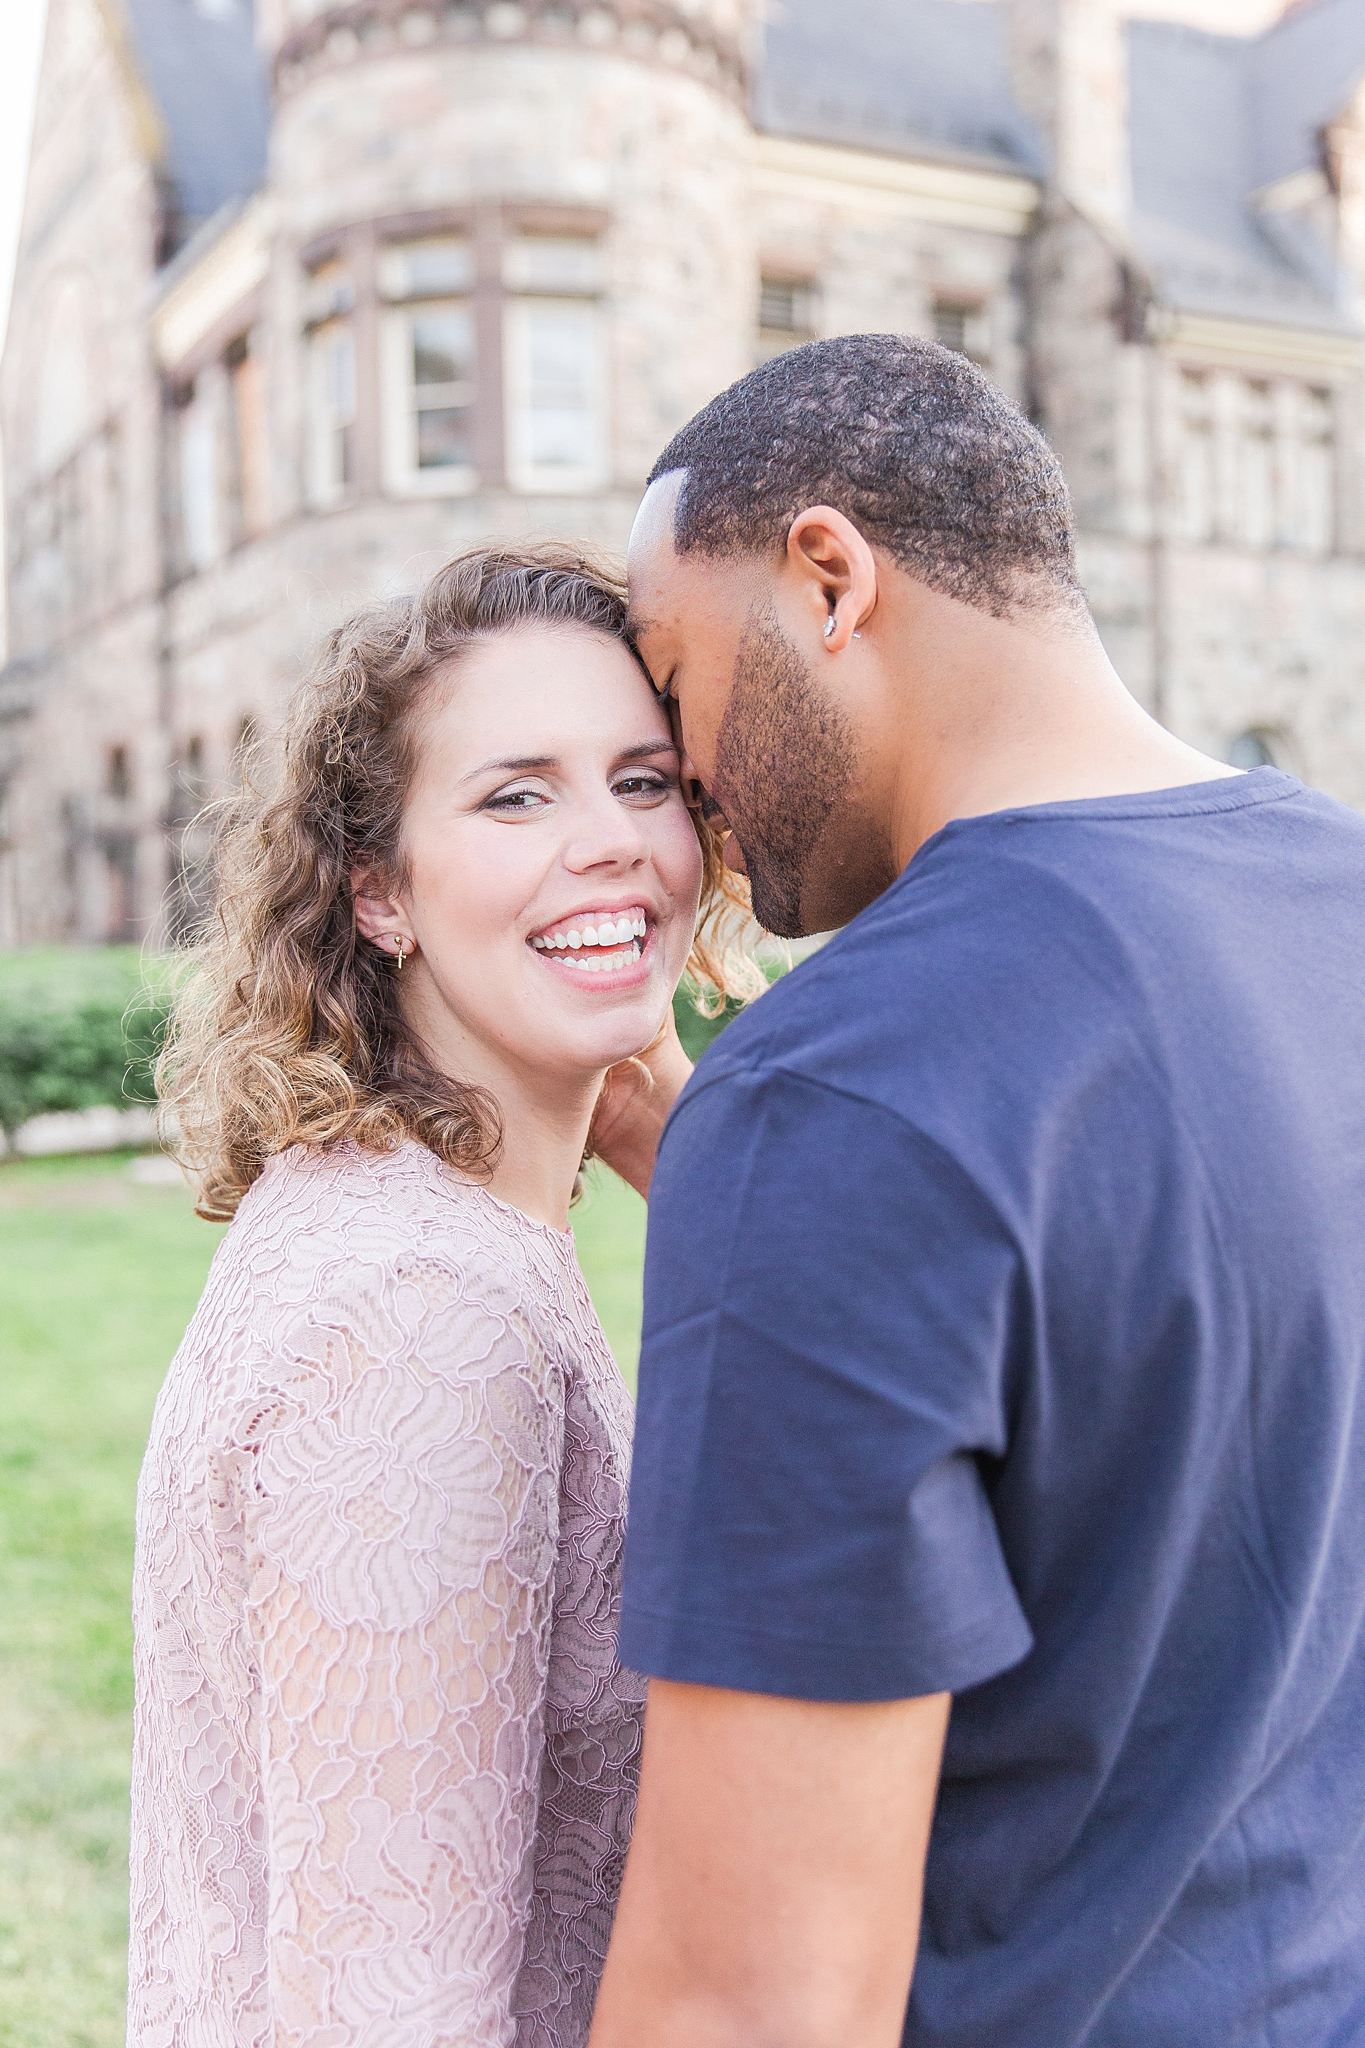 joyful-college-campus-engagement-photography-at-university-of-michigan-in-ann-arbor-mi-by-courtney-carolyn-photography_0015.jpg